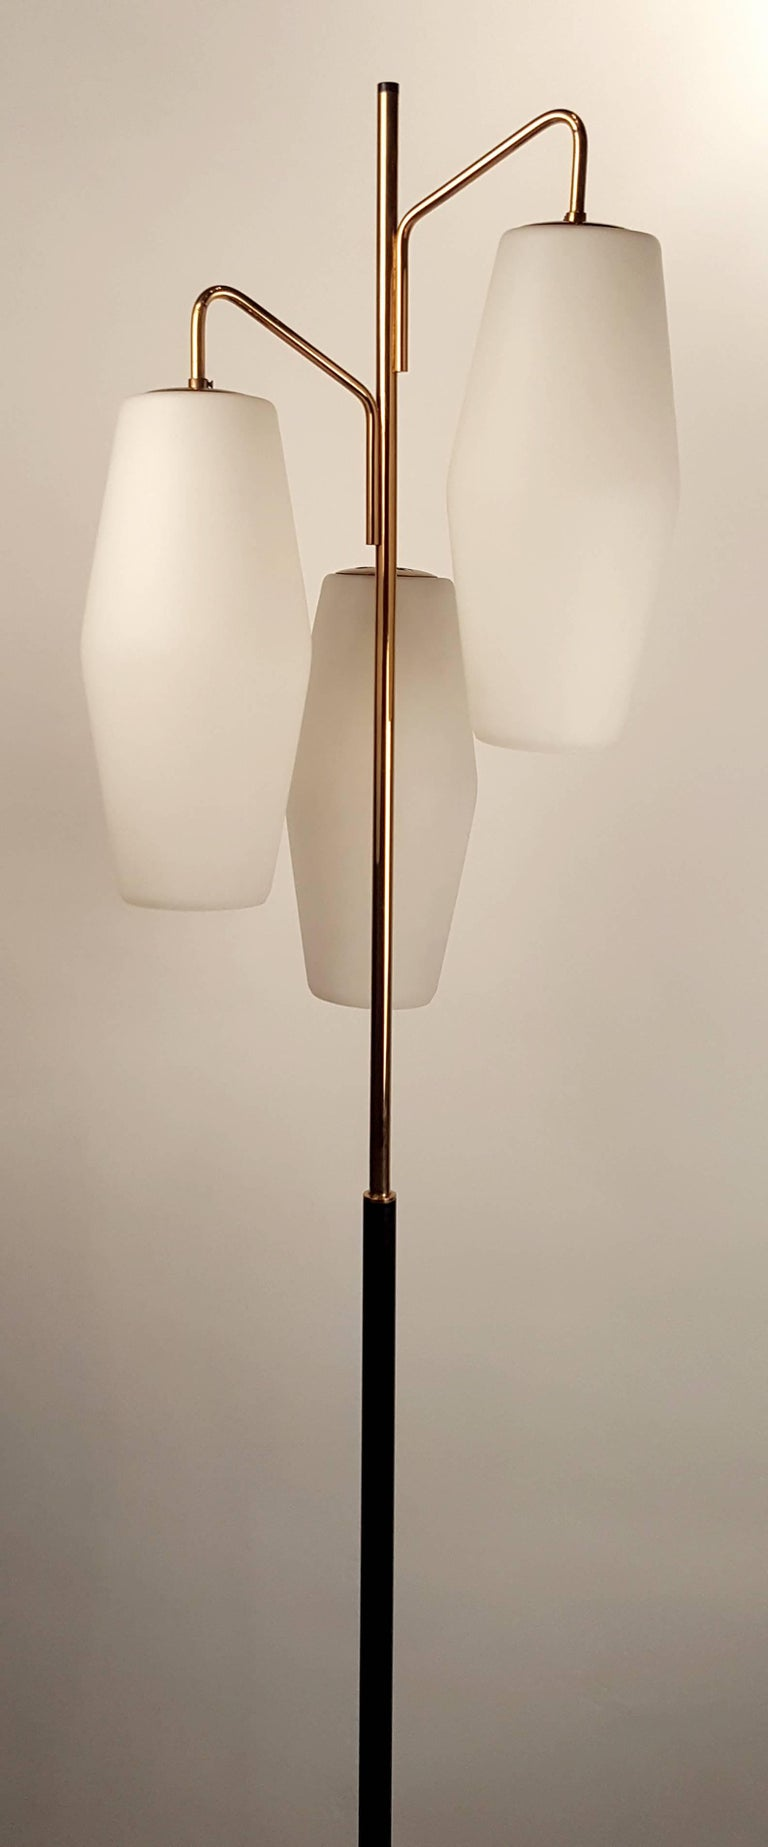 Italian Modernist Stilnovo Floor Lamp with Frosted Glass Shades and Marble Base In Good Condition For Sale In Dallas, TX